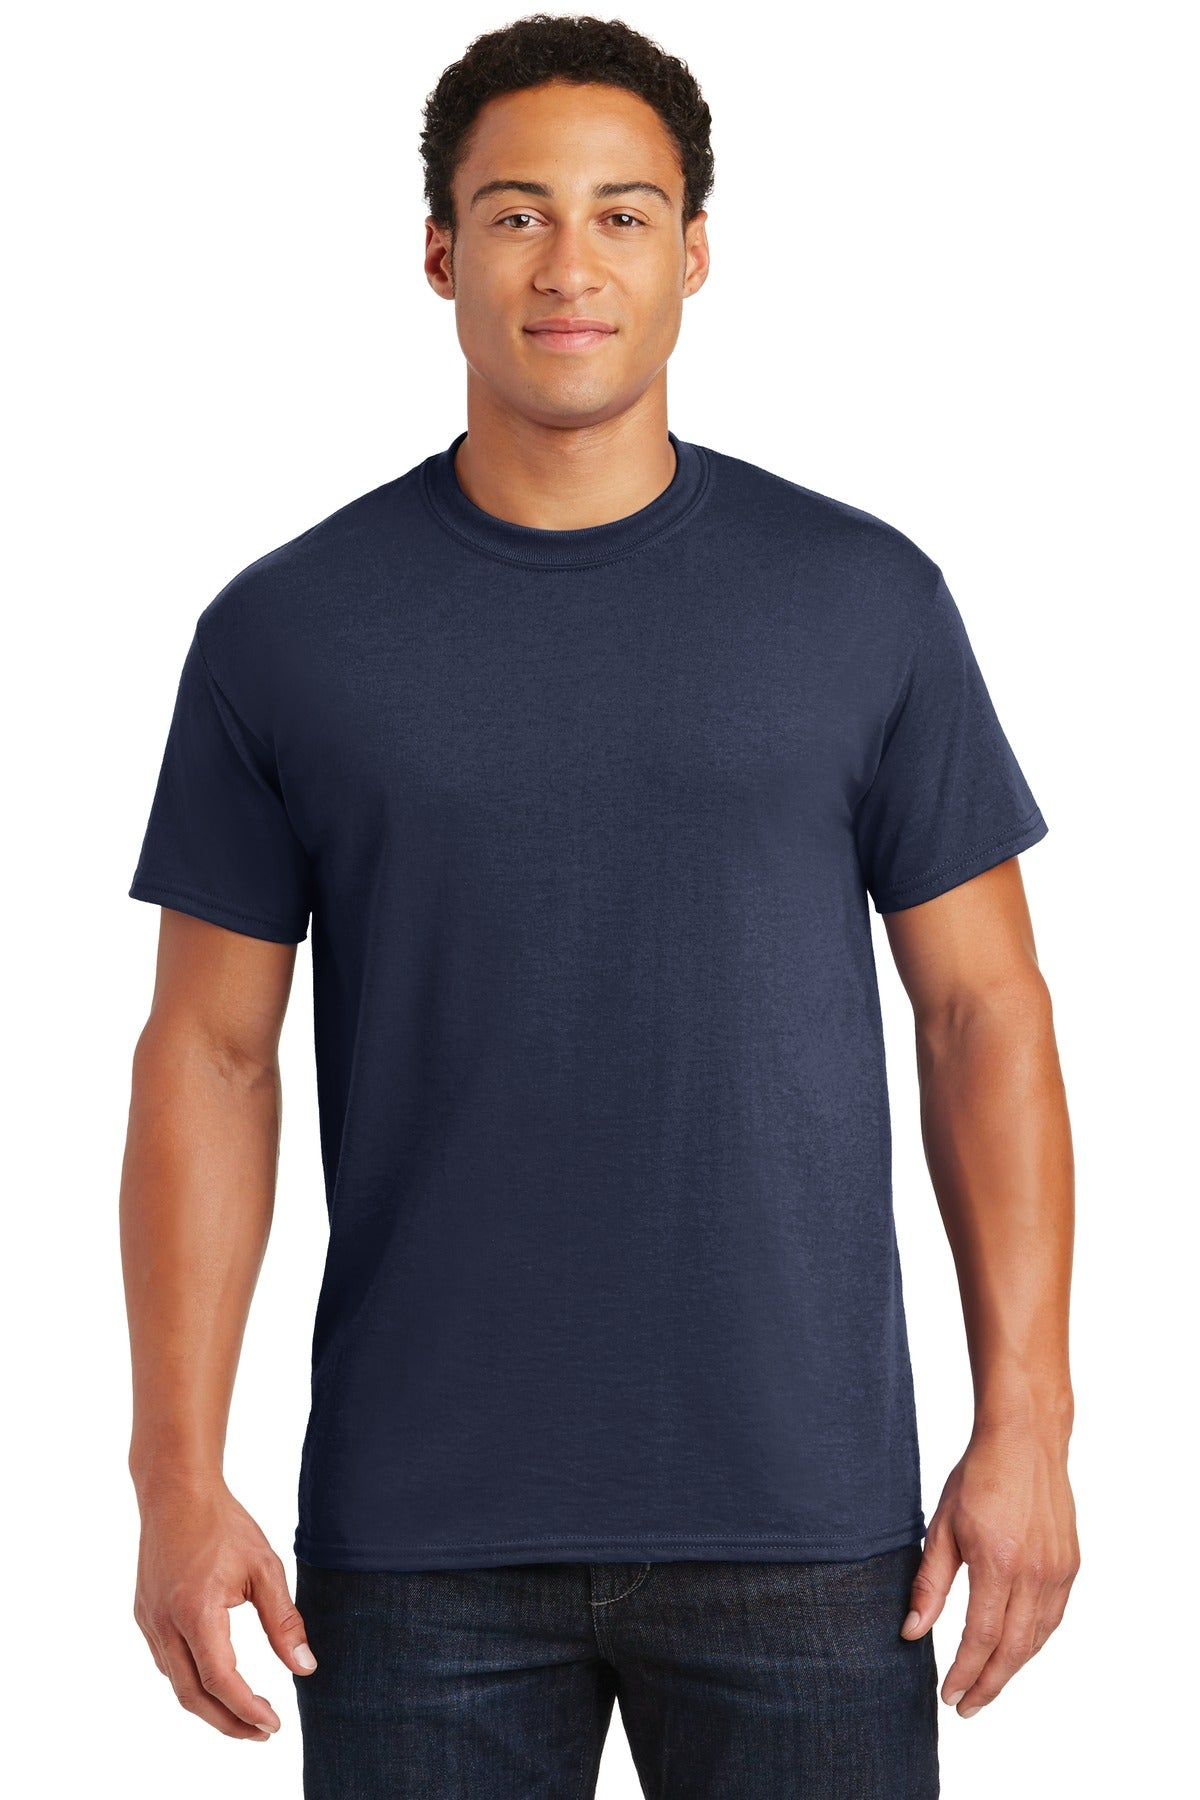 Navy Gildan DryBlend 50 Cotton/50 Poly T-Shirt.